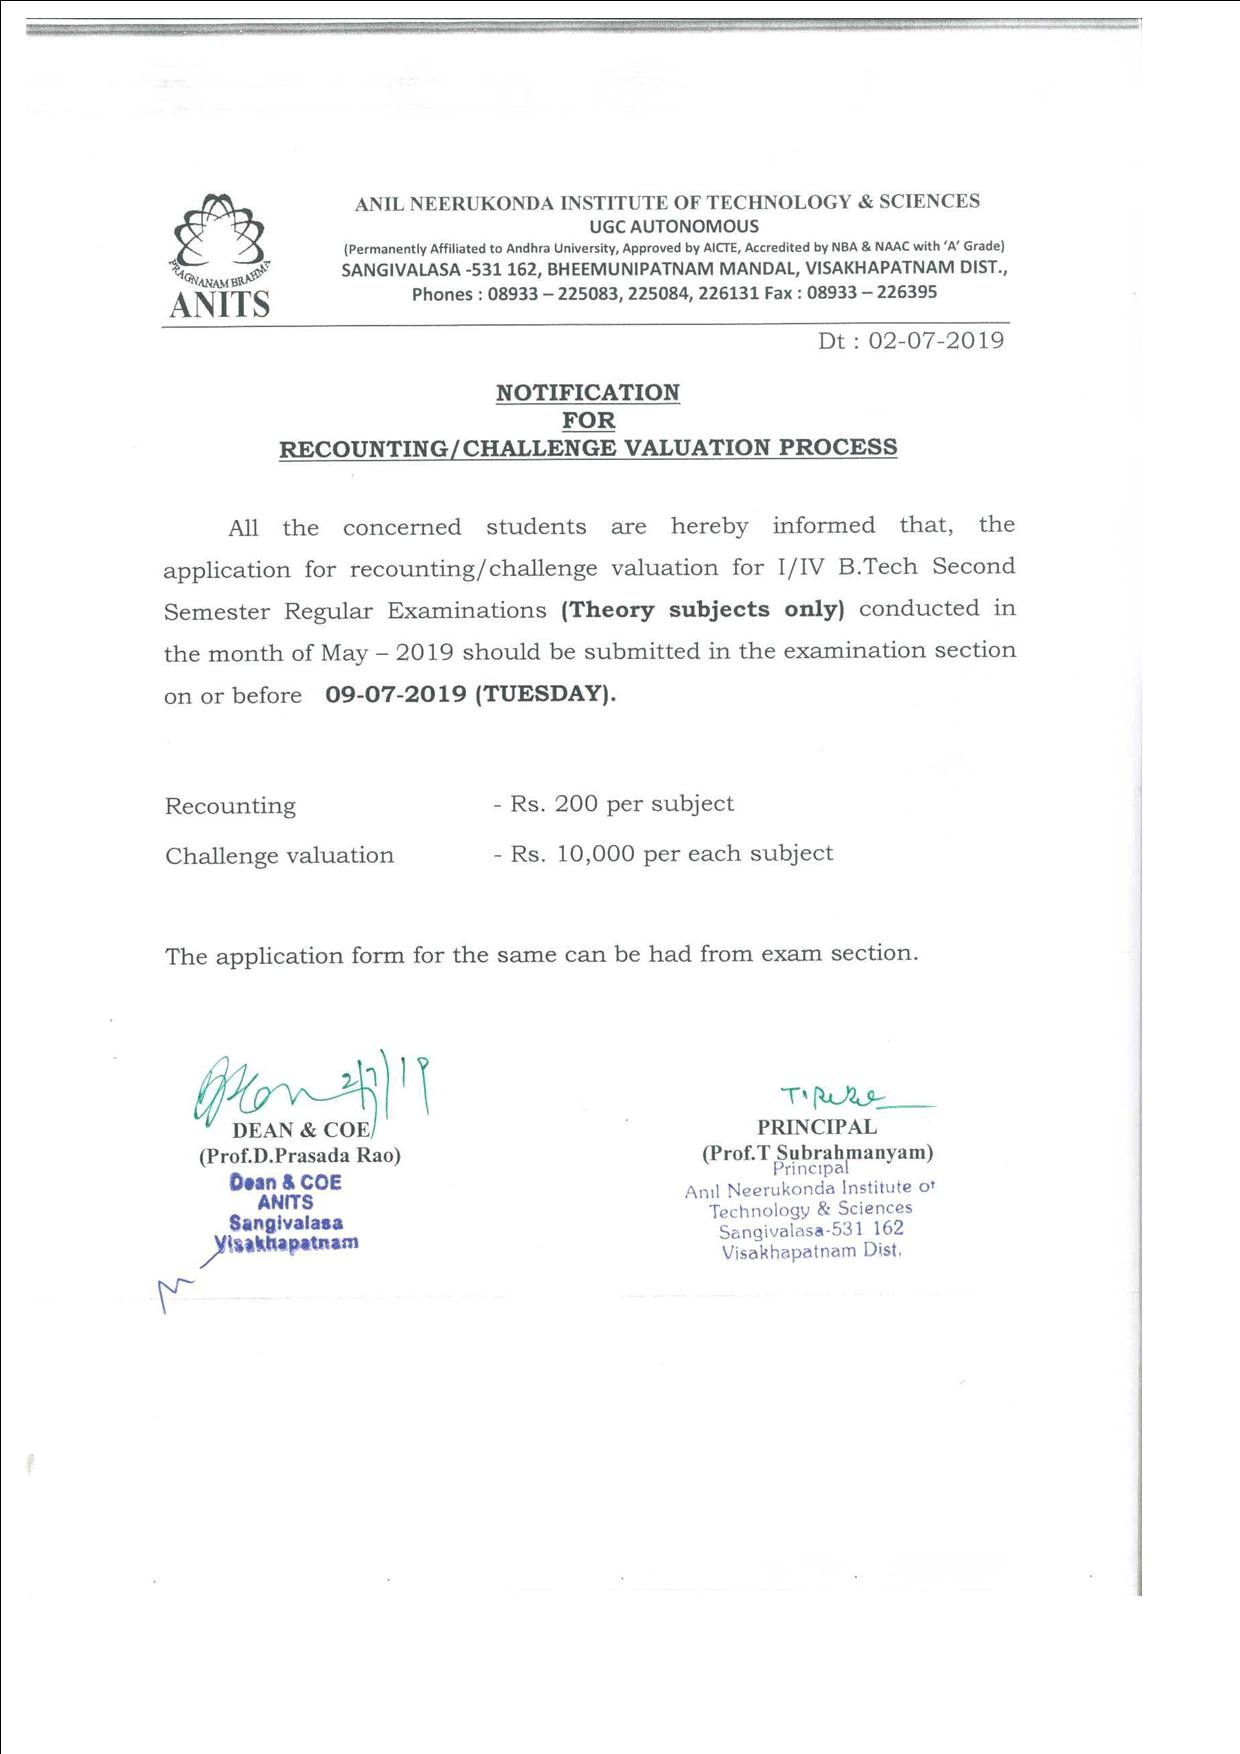 Welcome to Anil Neerukonda Institute of Technology & Sciences